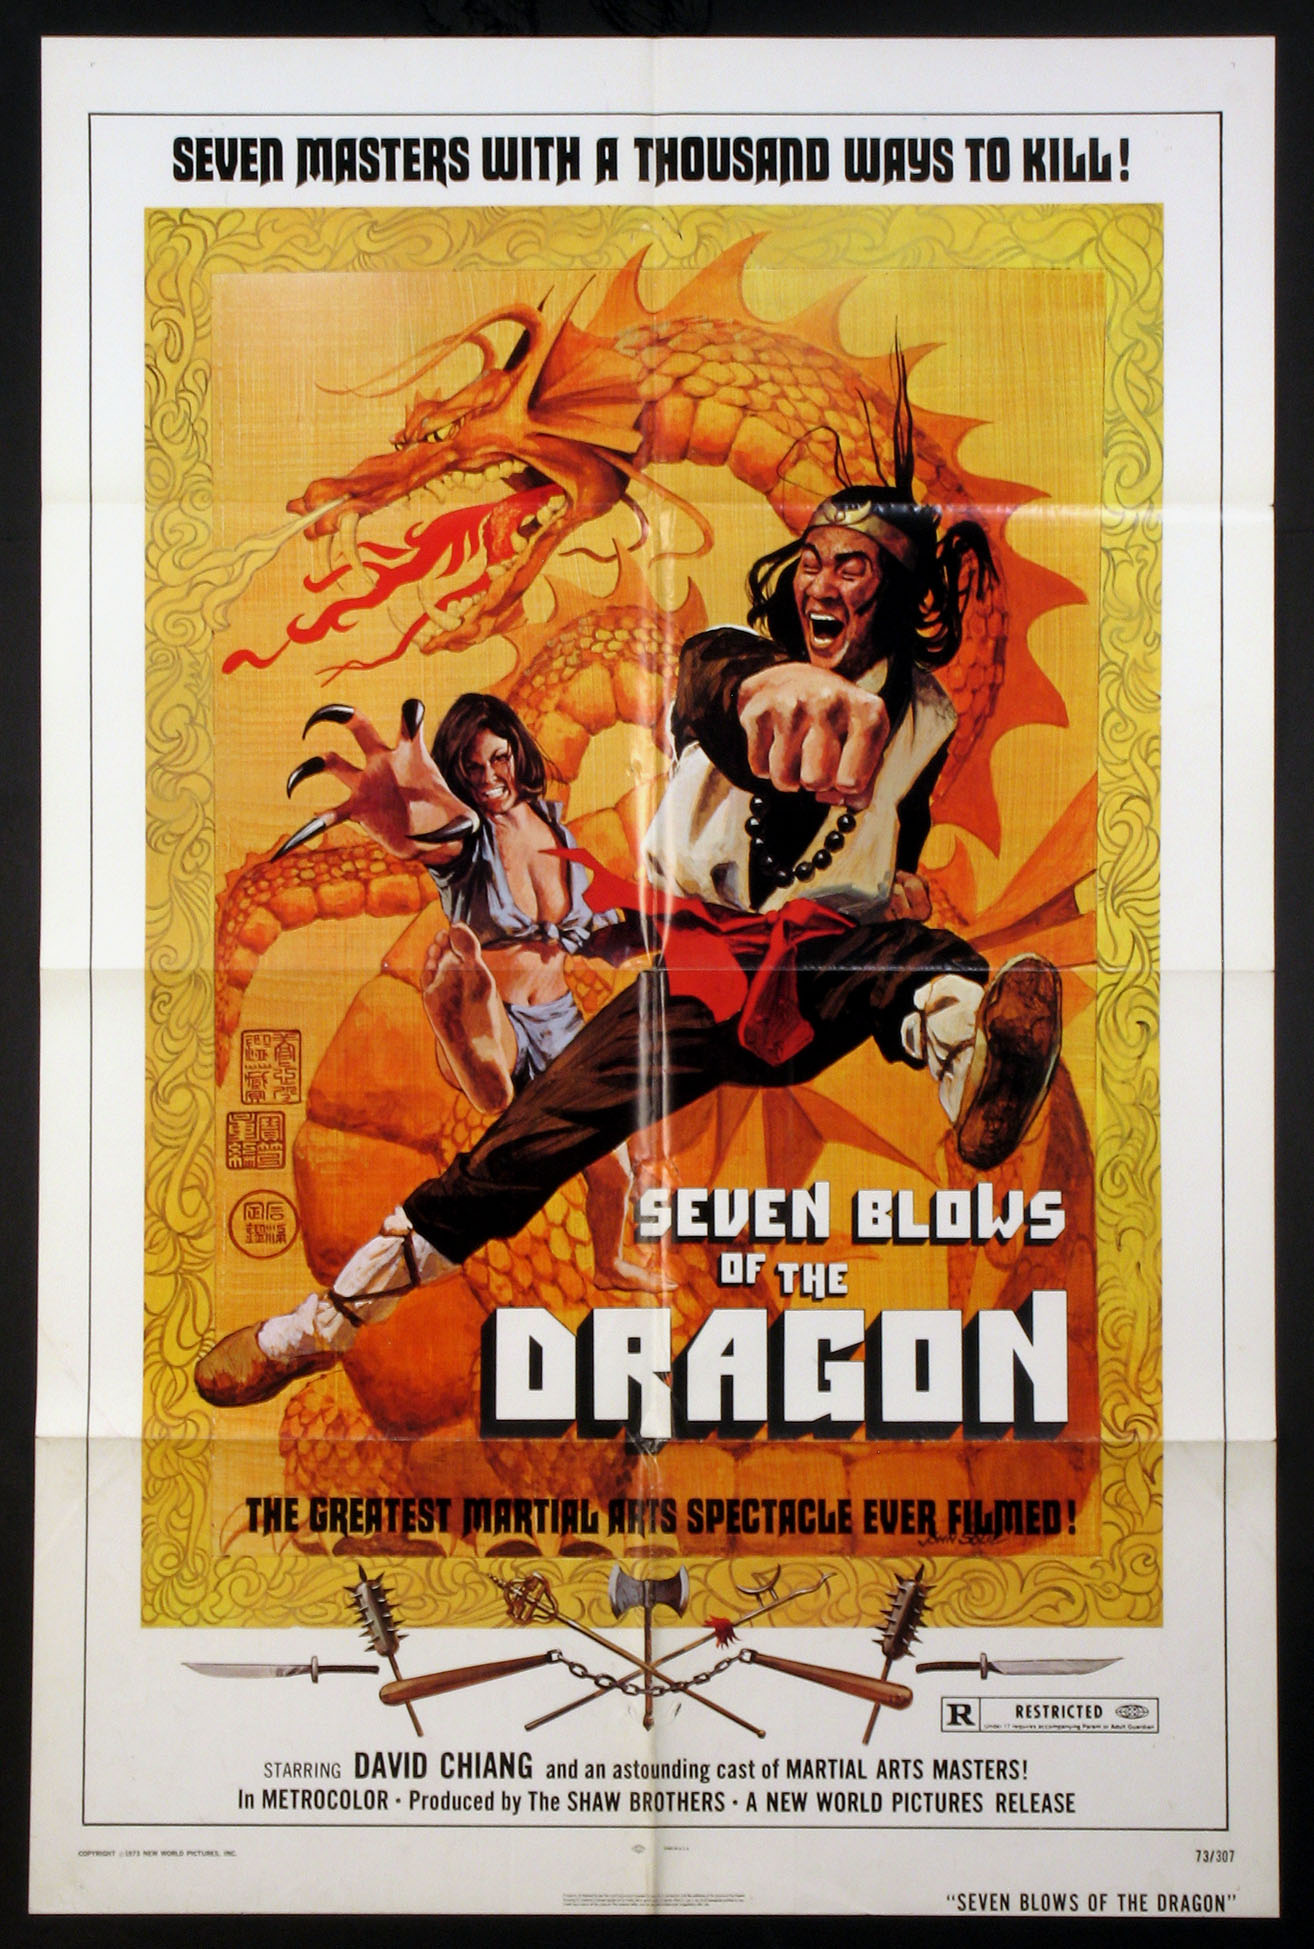 SEVEN BLOWS OF THE DRAGON @ FilmPosters.com